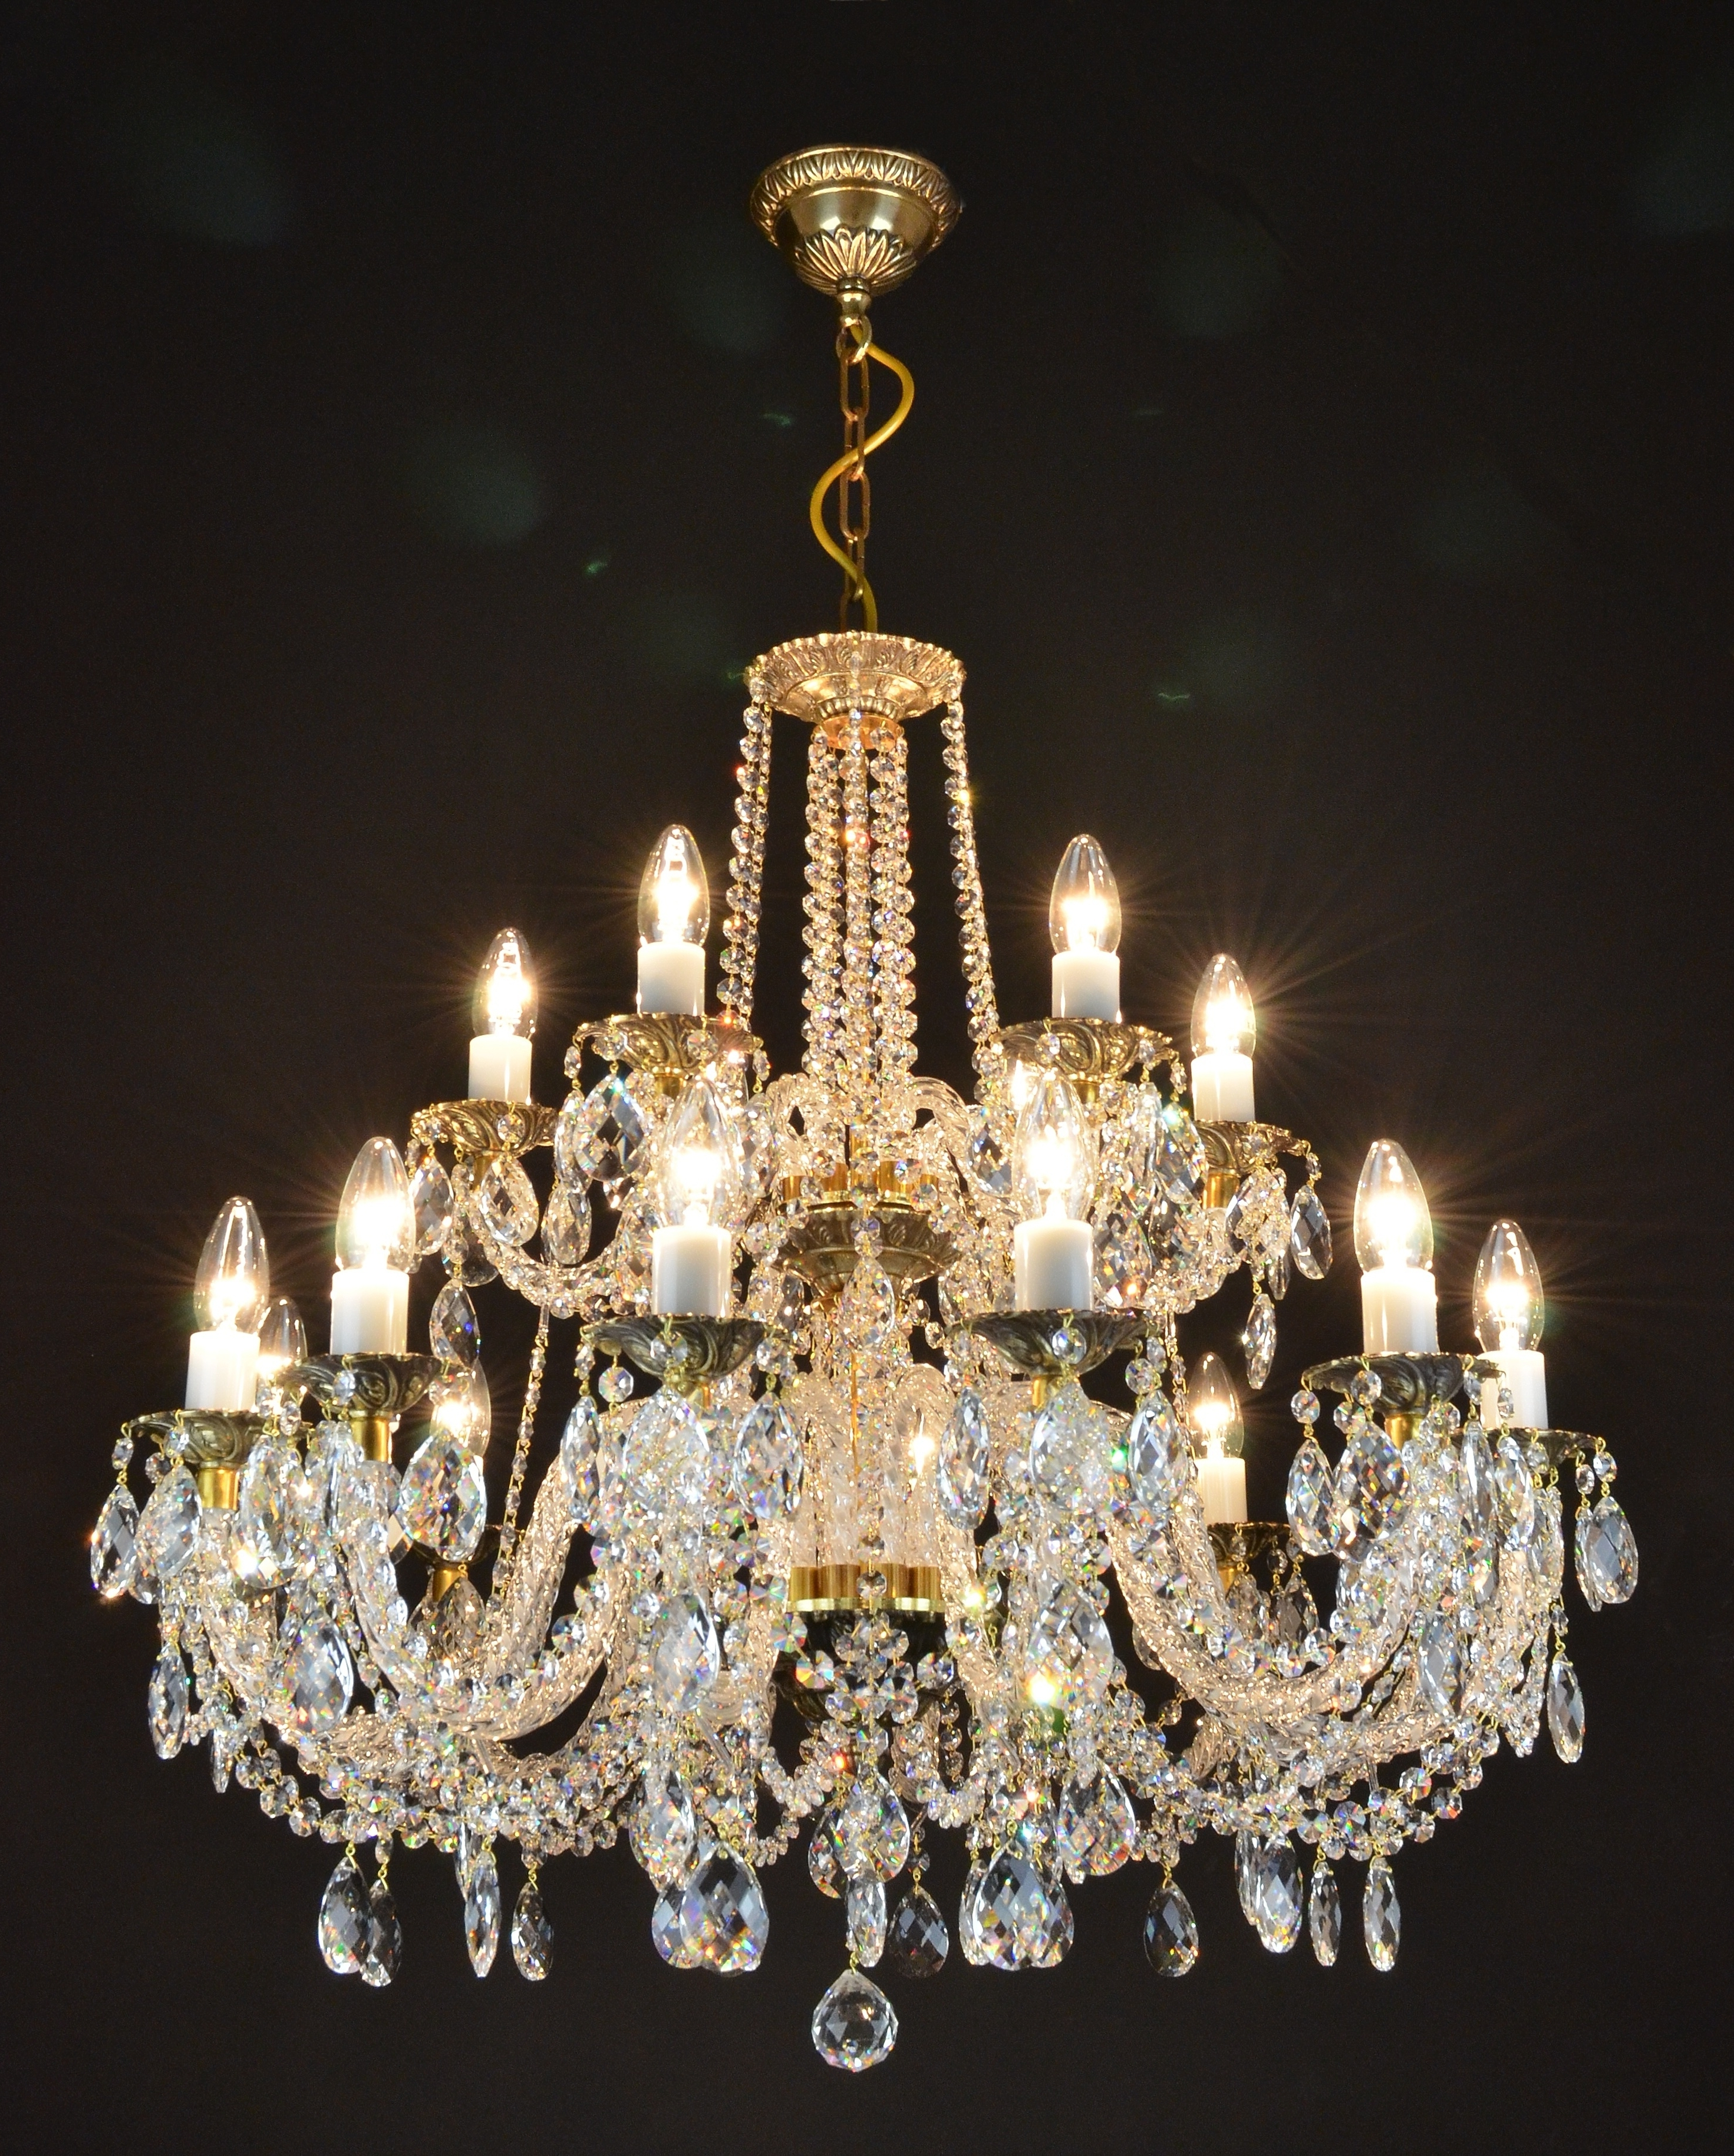 Lead Crystal Chandeliers In Well Liked Free Images : Lighting, Decor, Light Fixture, Swarovski, Crystal (View 5 of 20)